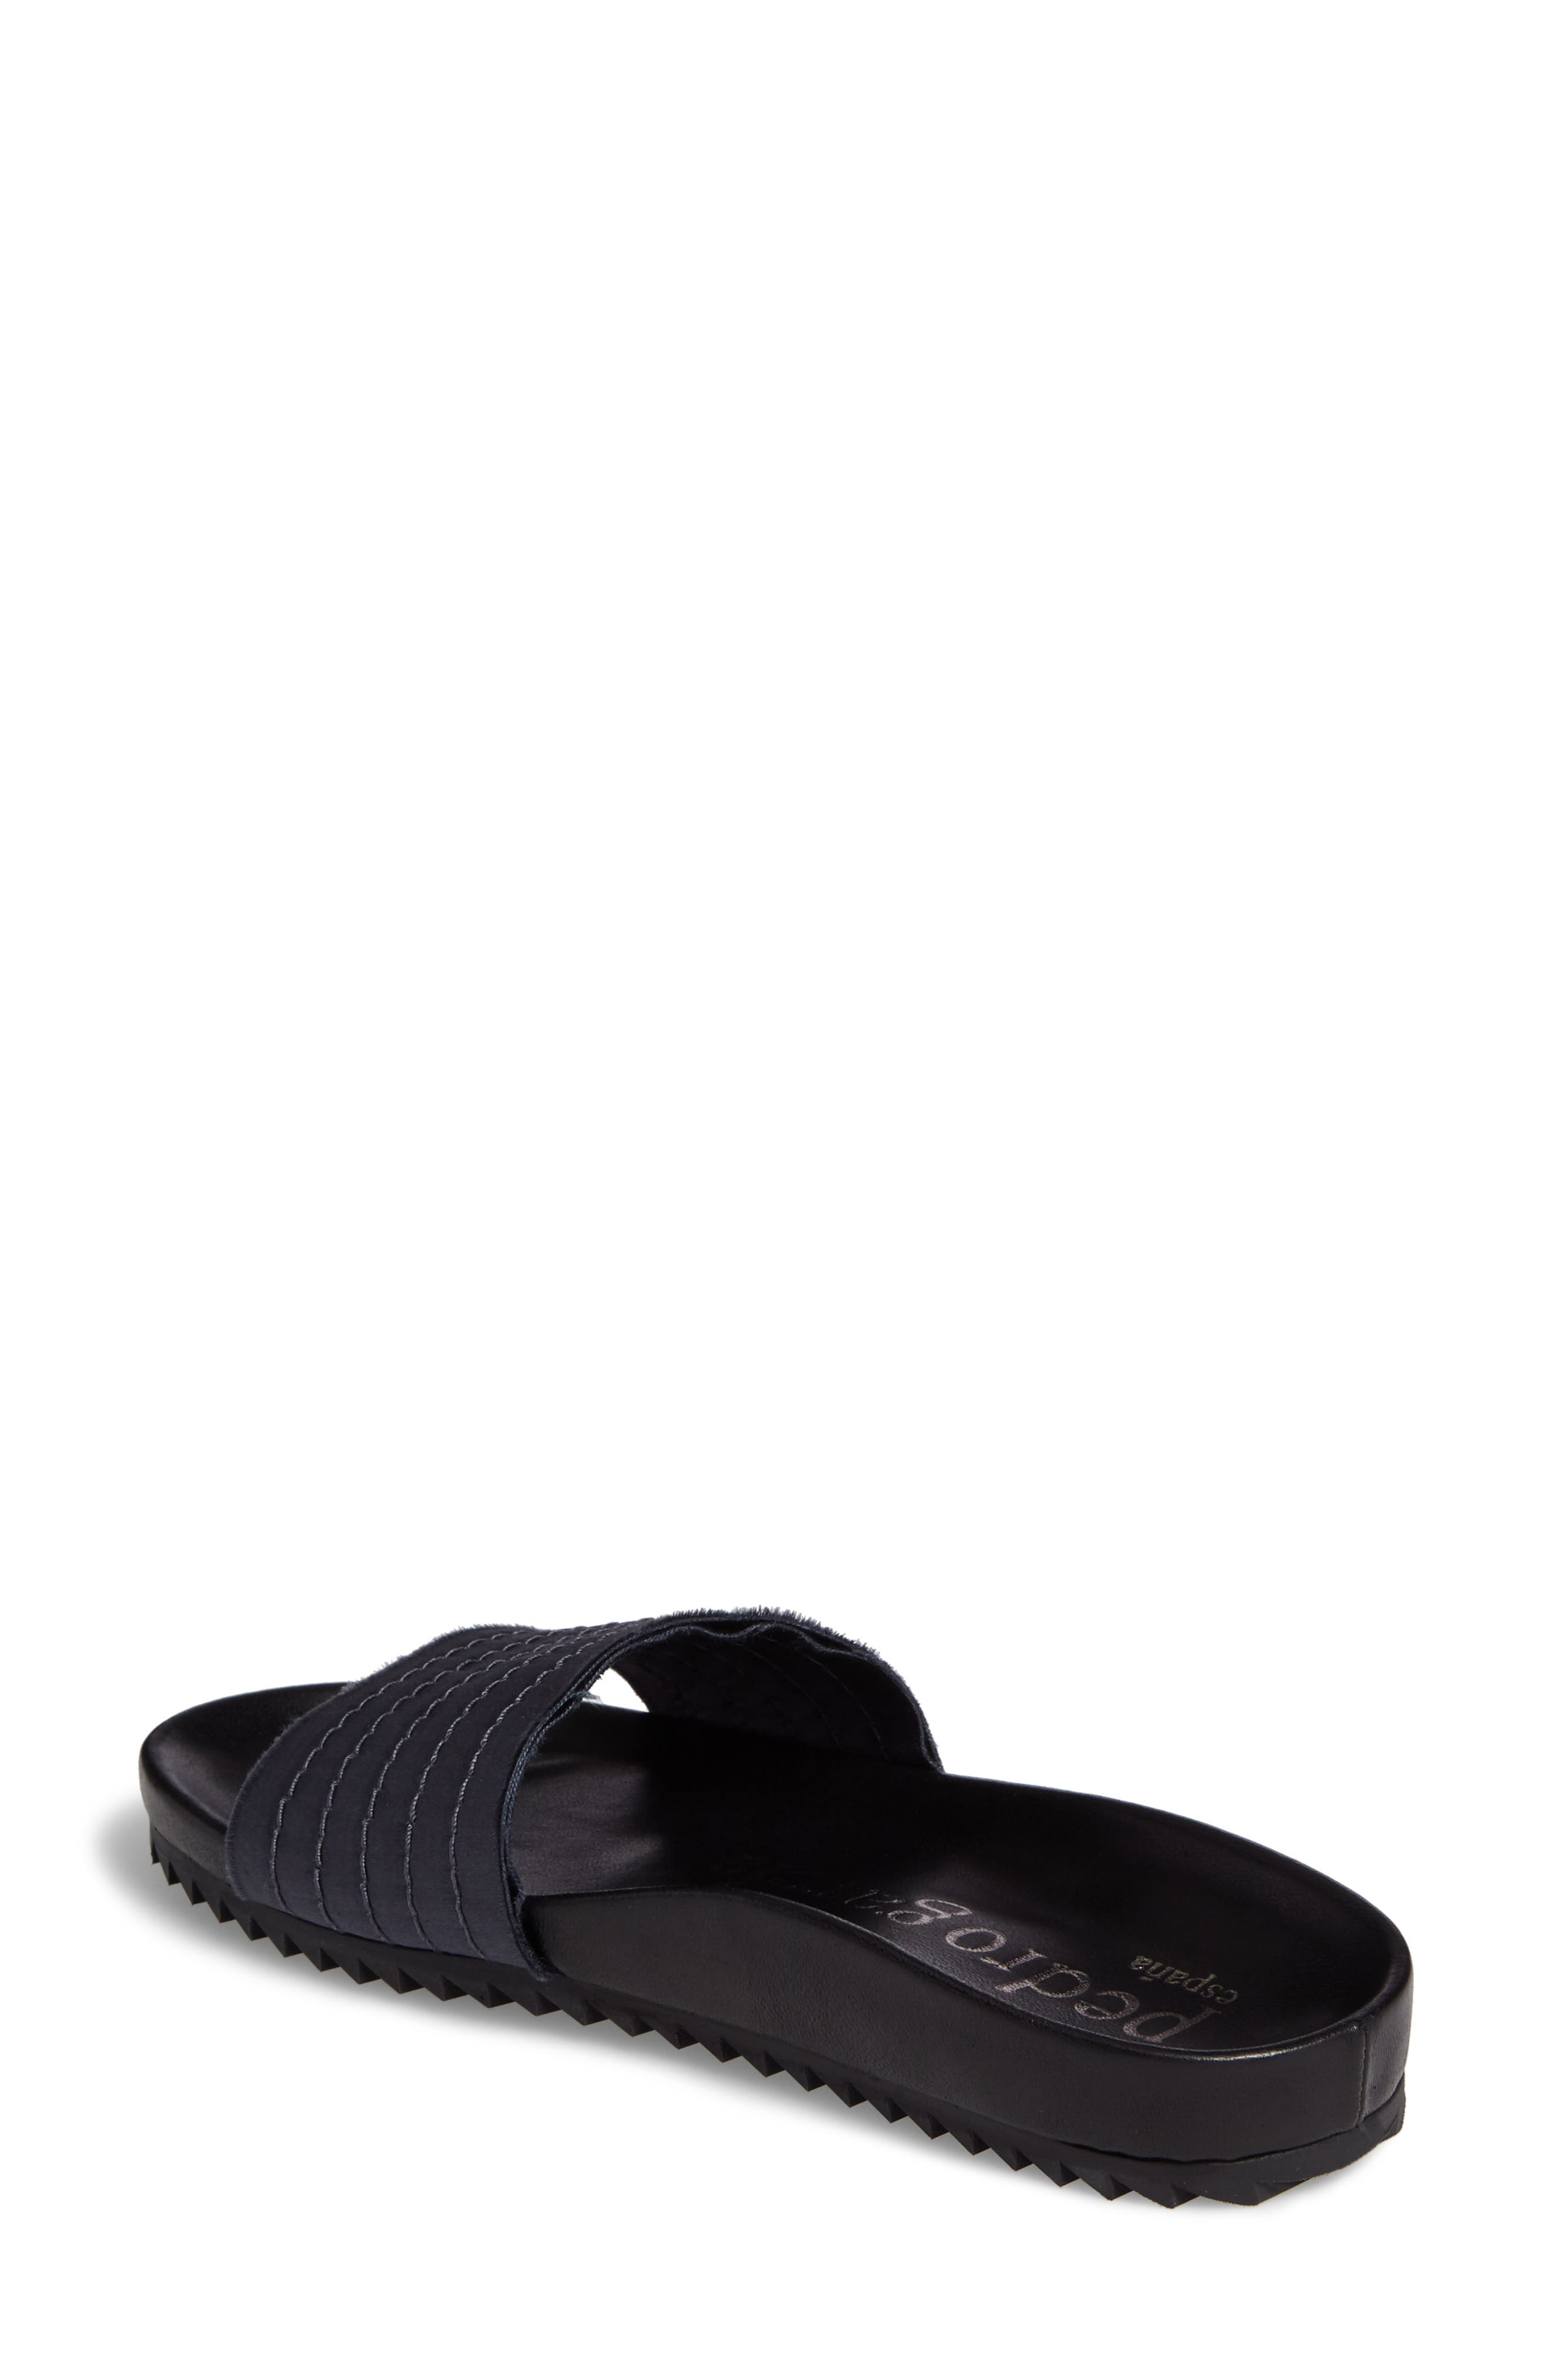 Amparo Slide Sandal,                             Alternate thumbnail 3, color,